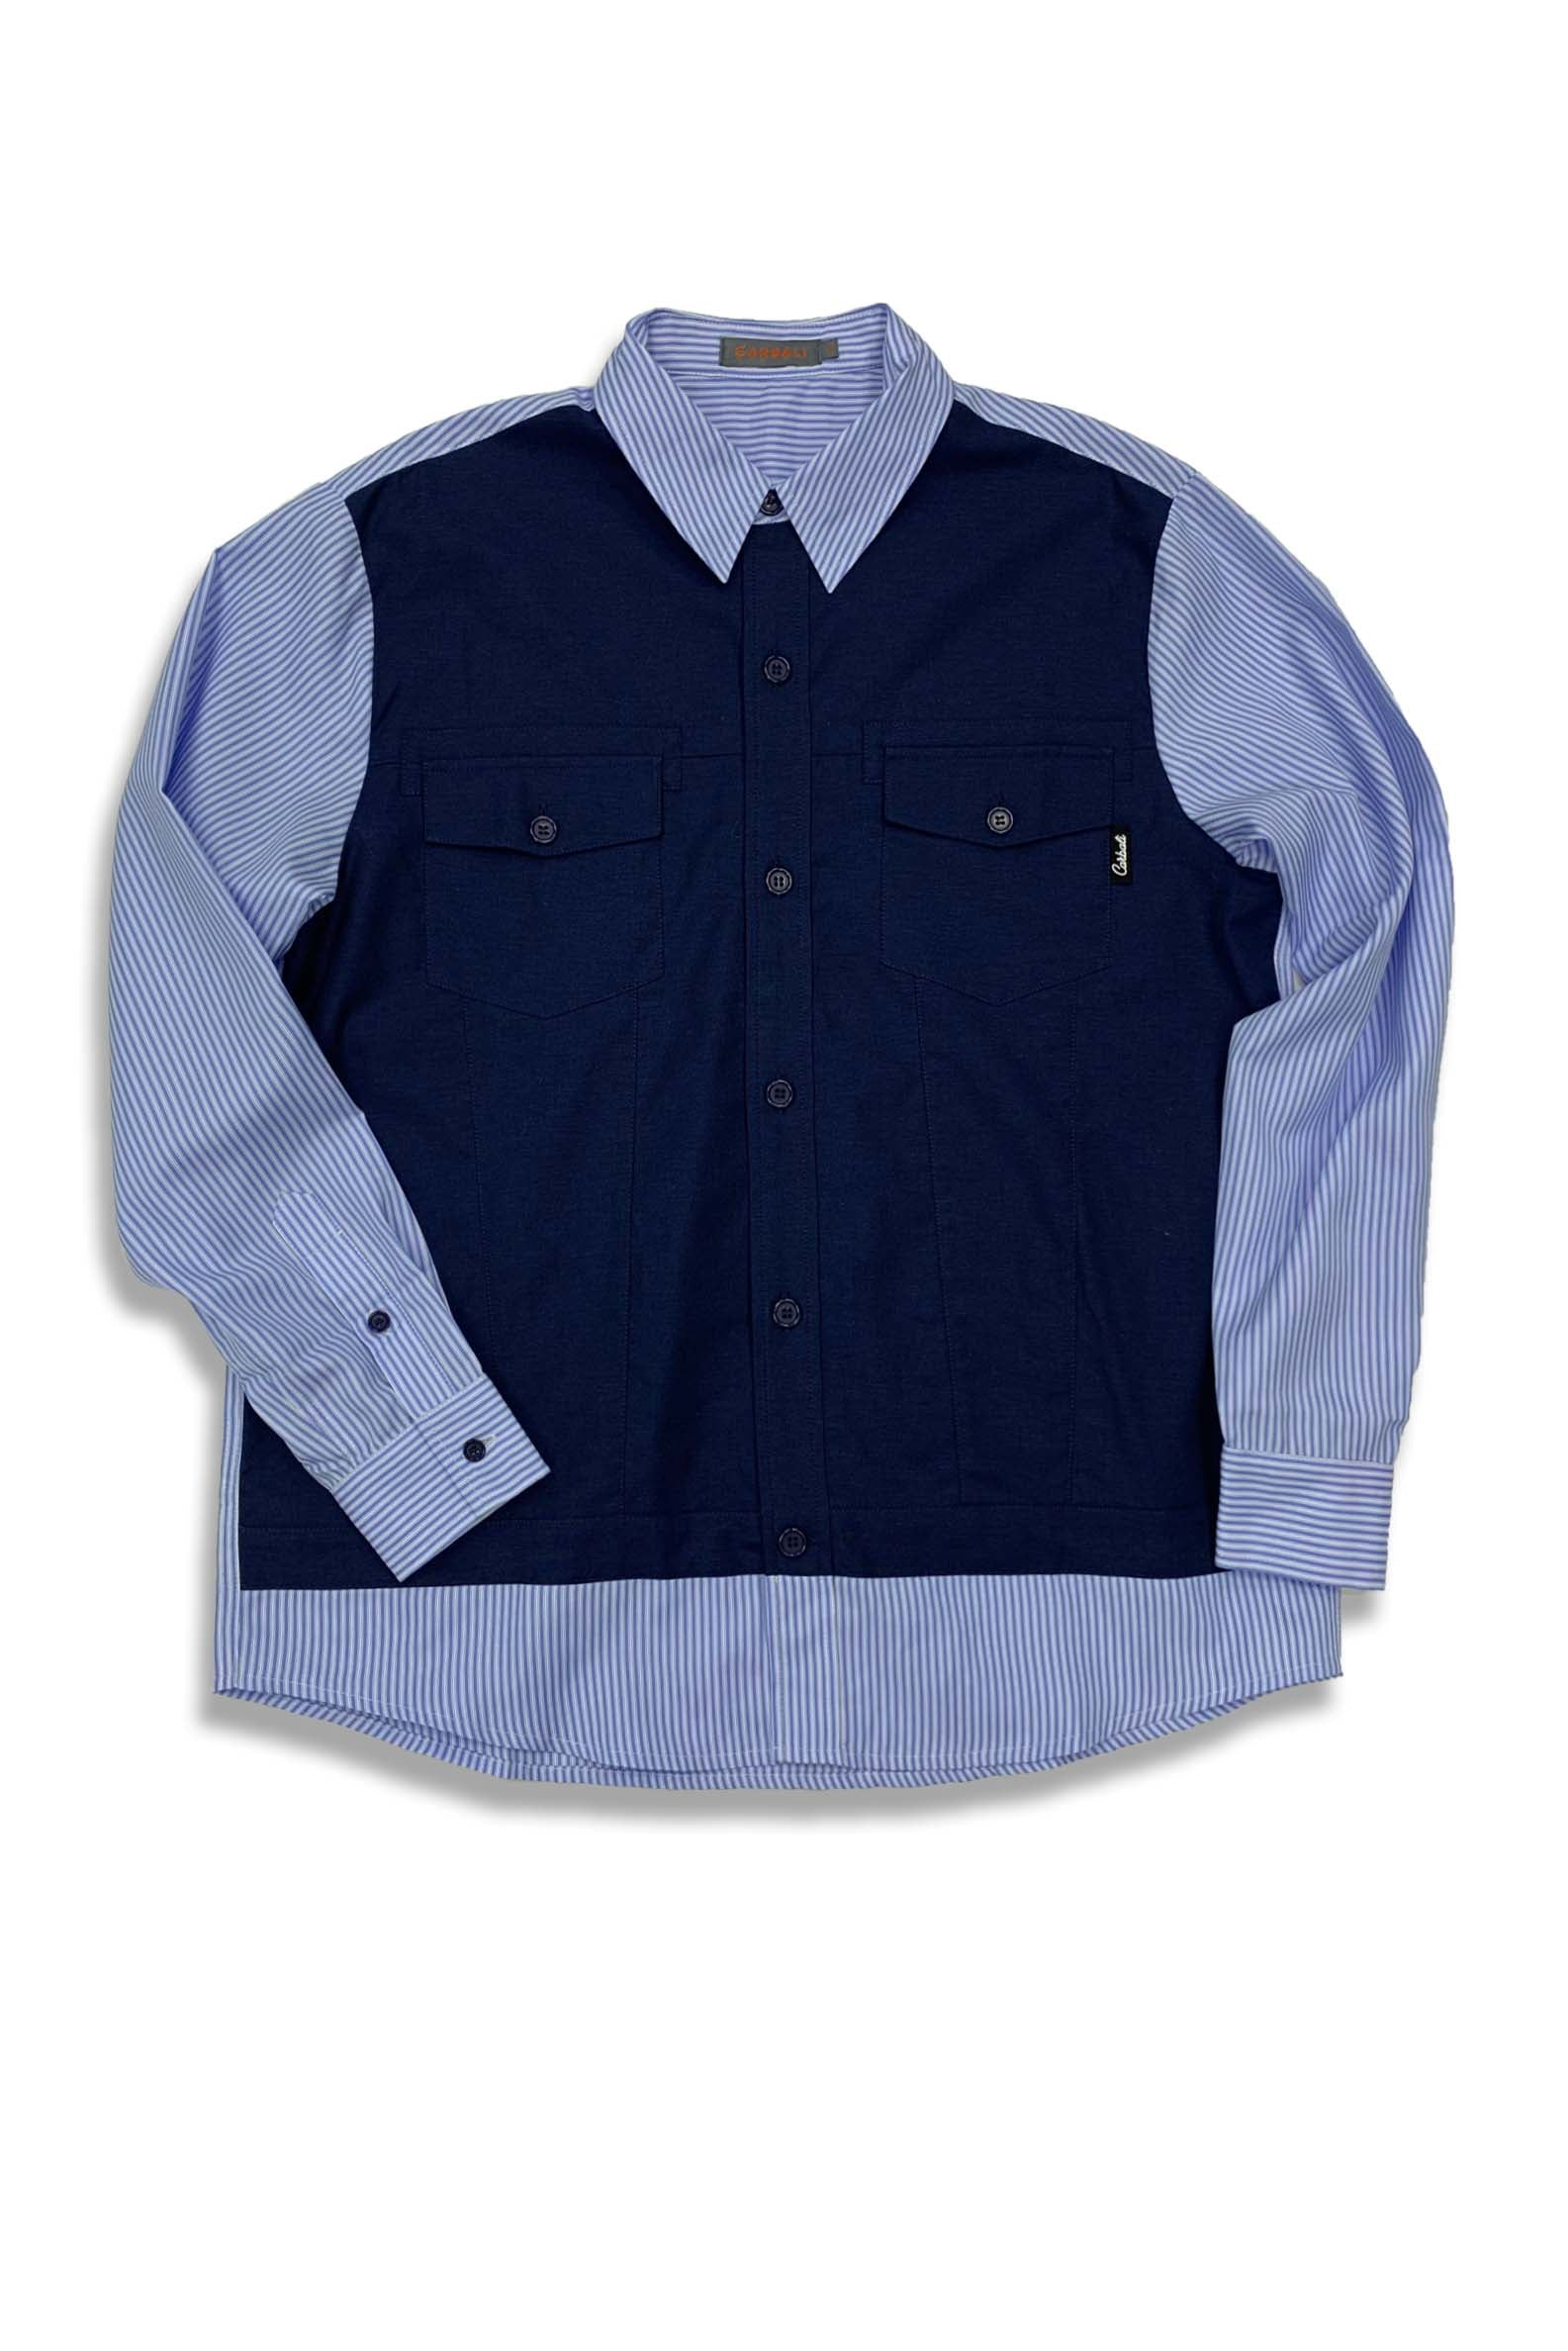 Carbali Patchwork Shirt in Blue